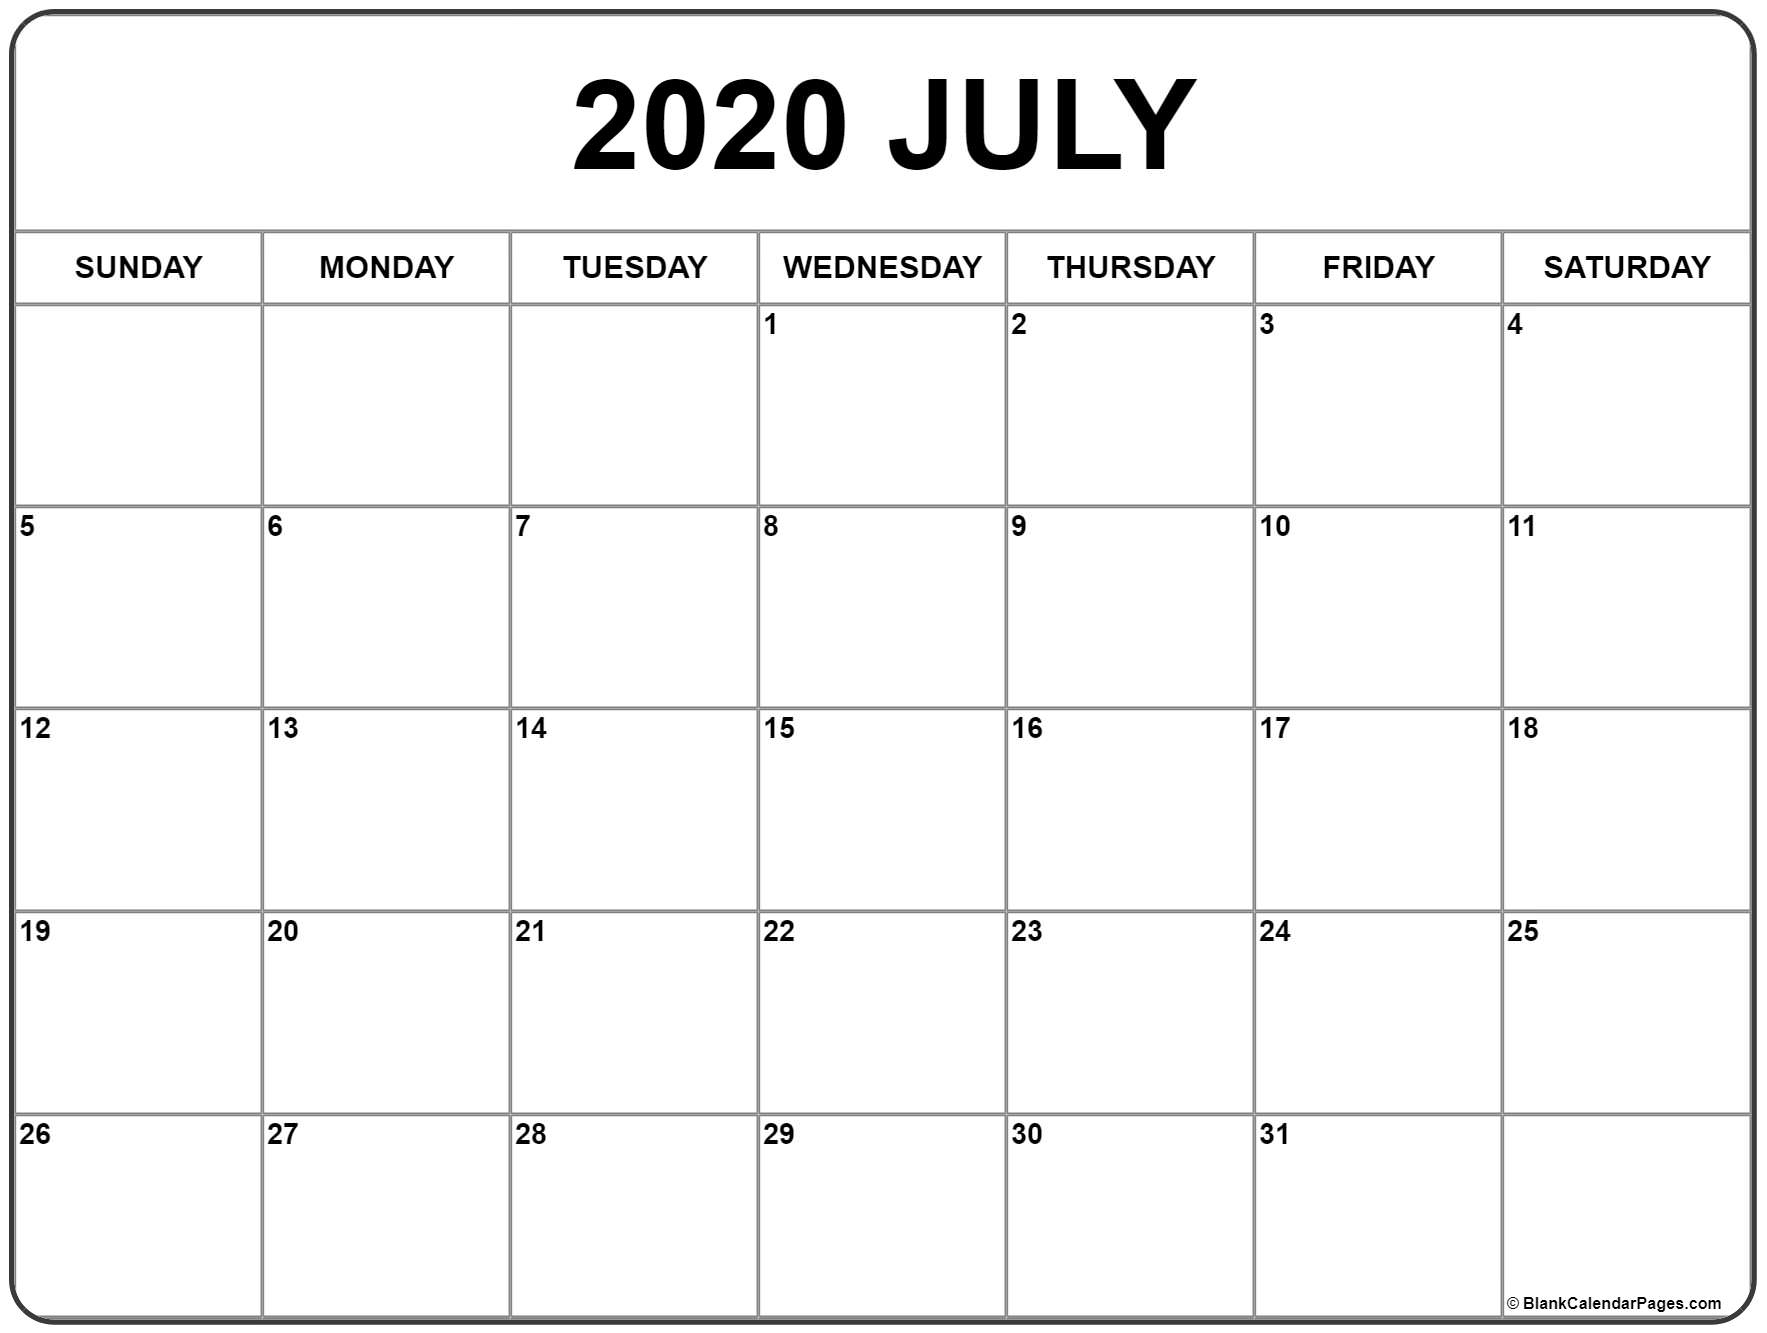 July 2020 Calendar | Free Printable Monthly Calendars with 2020 Monthly Calendar Start Monday